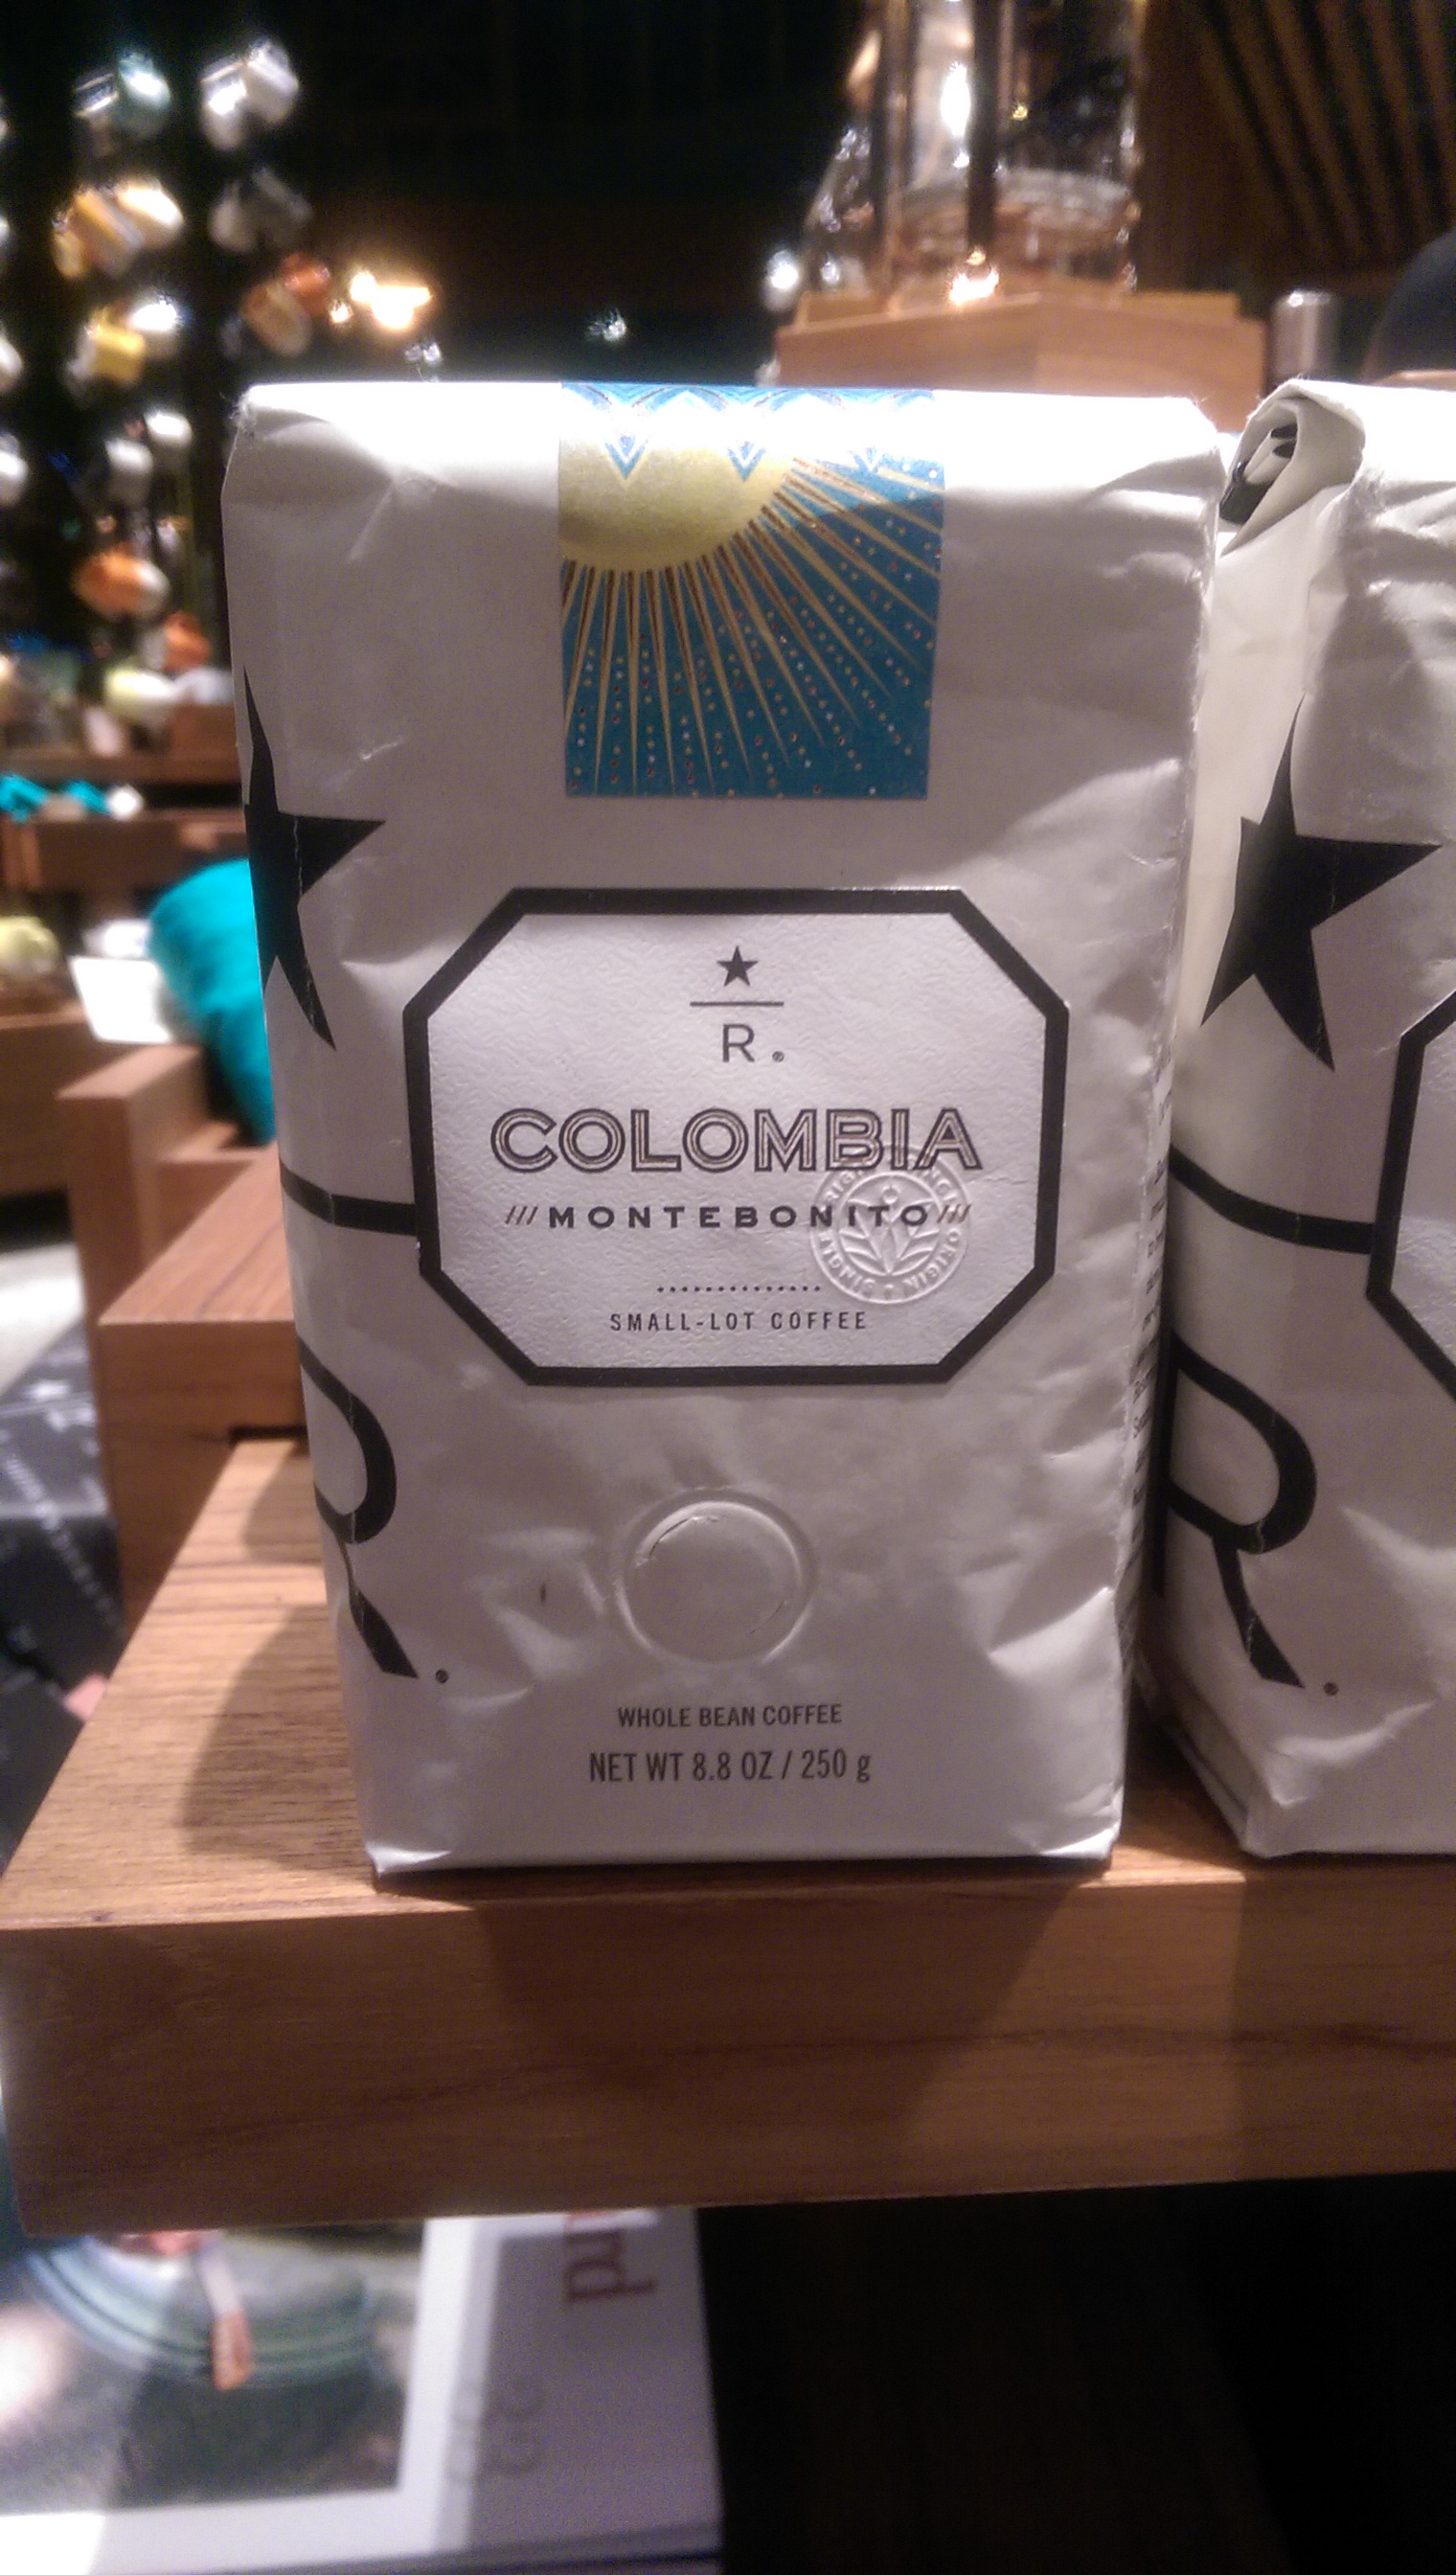 IMAG4418 - Image of the Colombia Montebenito coffee taken at the Roastery.jpg